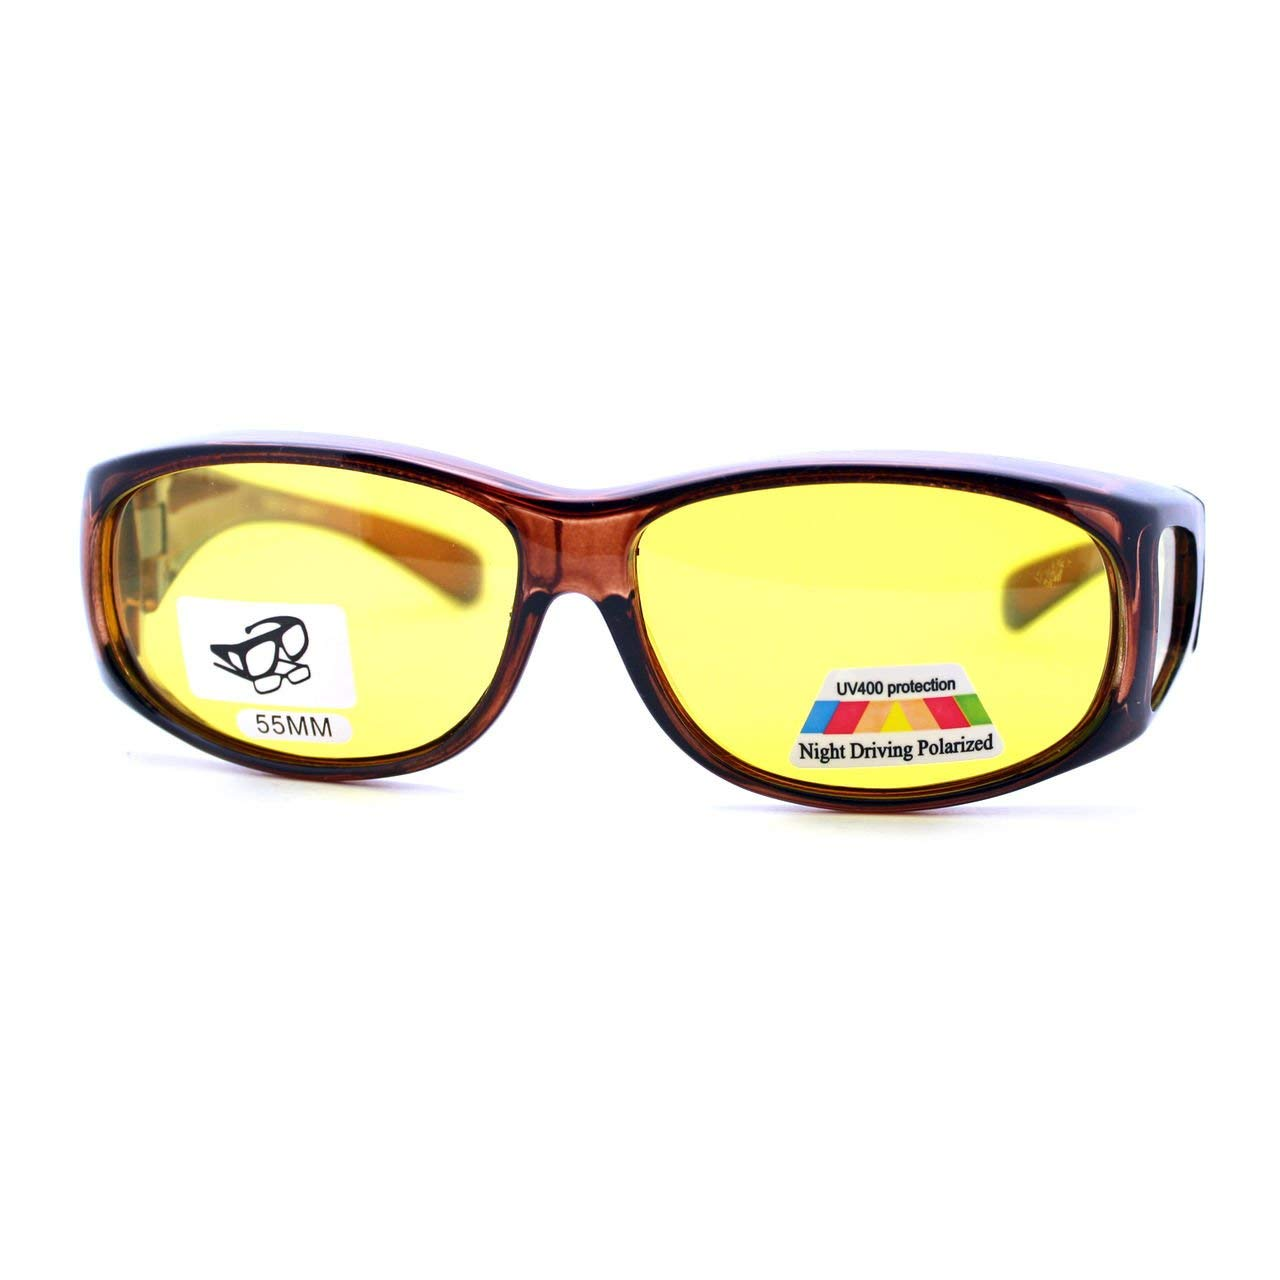 e9afe20a5dcd Get Quotations · Fit Over Small Glasses Polarized Night Driving Yellow Lens  Sunglasses Brown